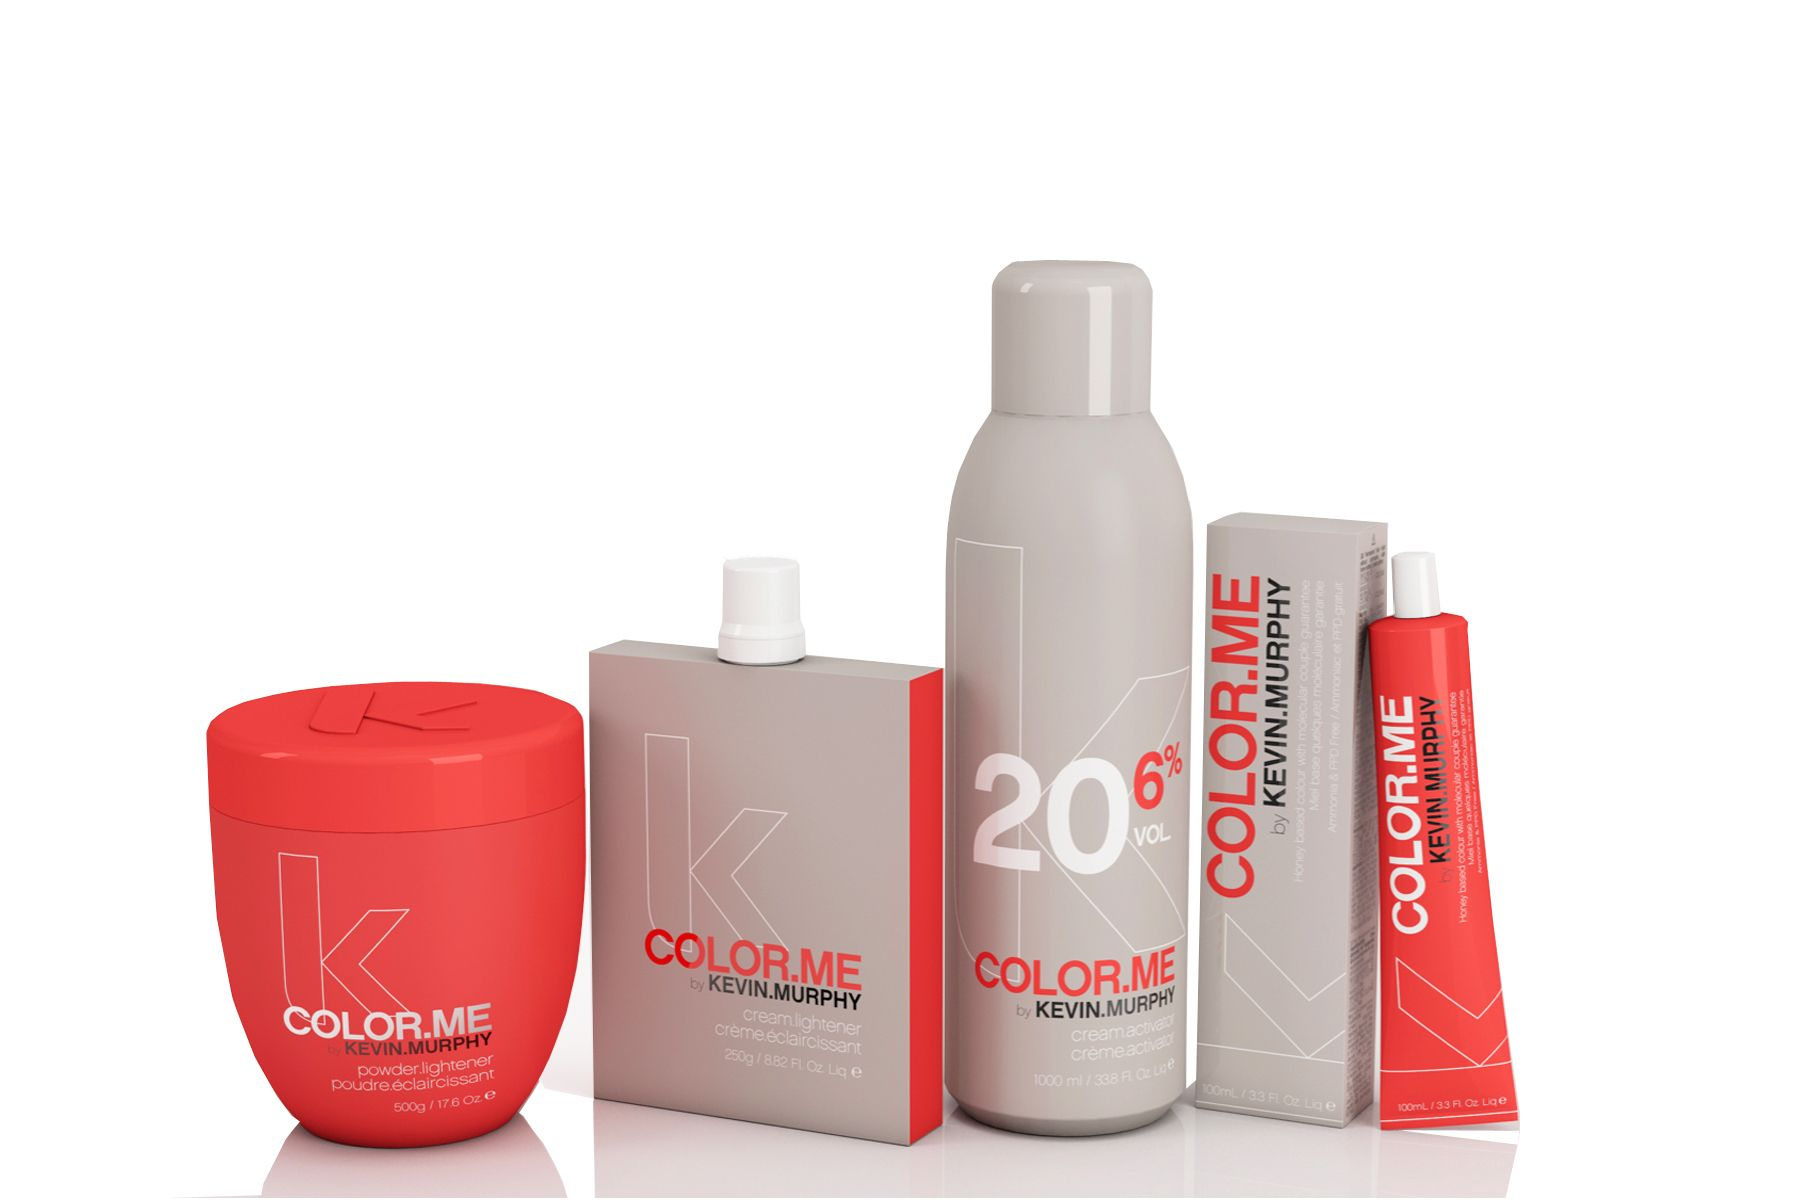 COLOR.ME by KEVIN.MURPHY Collection.